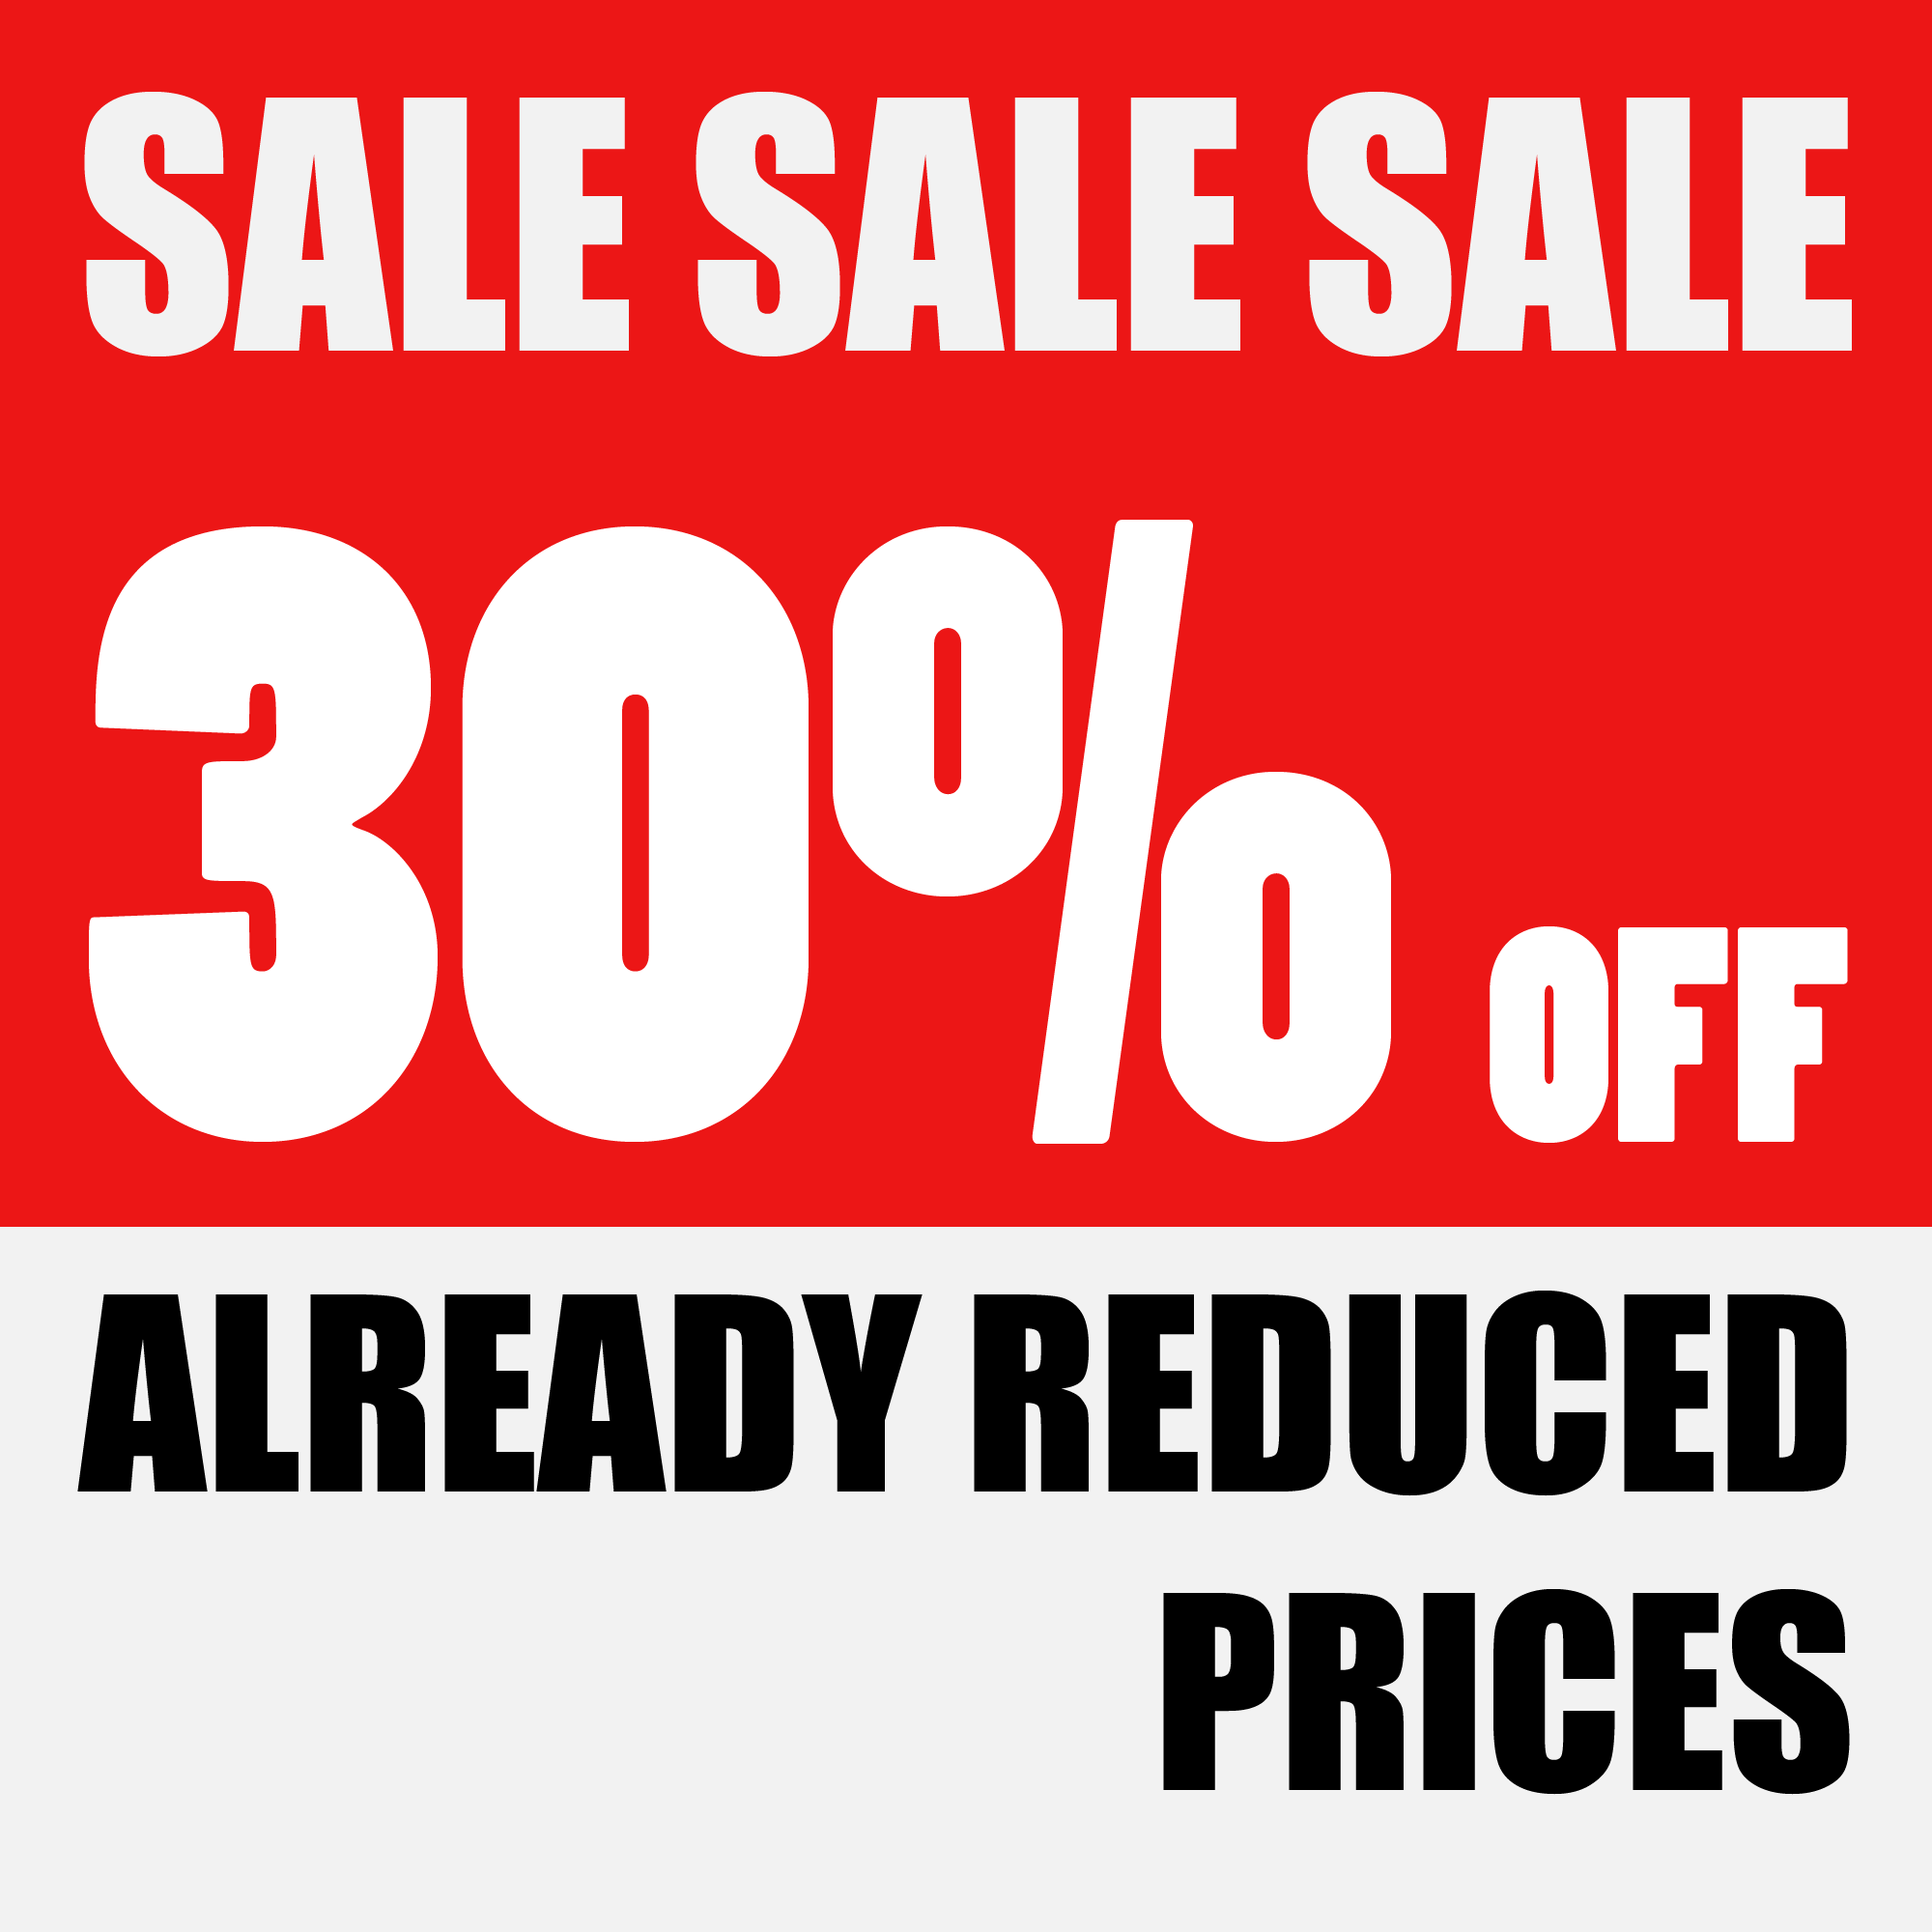 30% OFF.png